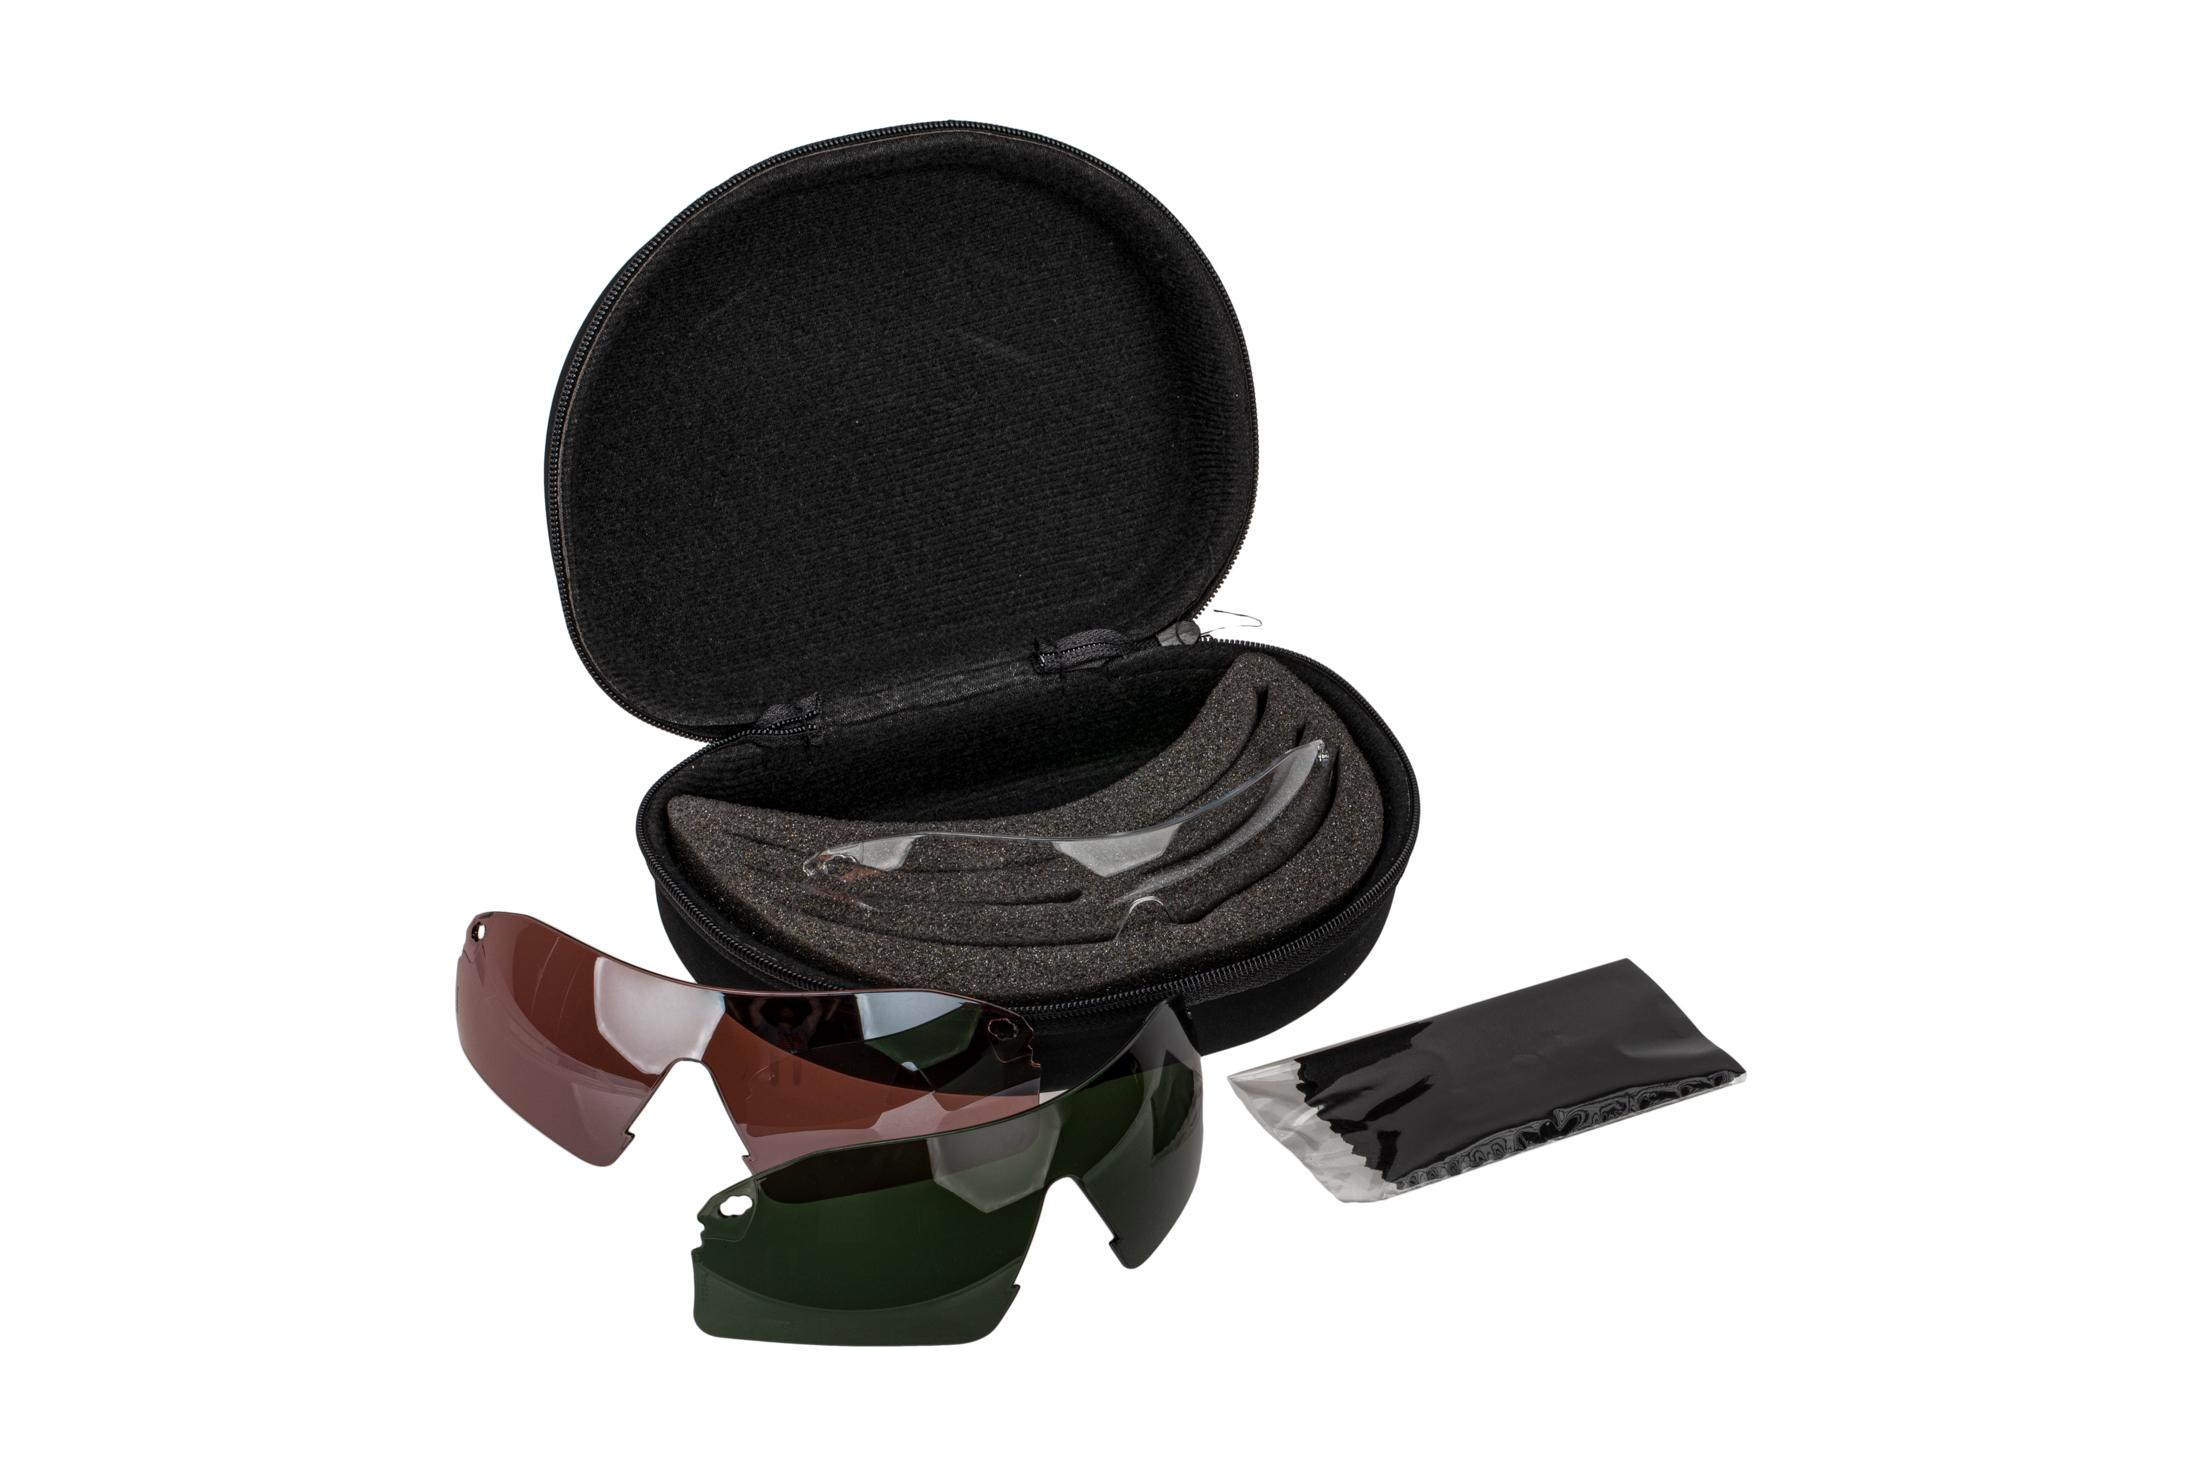 Pyramex Drop Zone Safety Glasses Interchangeable Lens Kit includes 4 ballistically rated lenses that stop 100% of UV light.